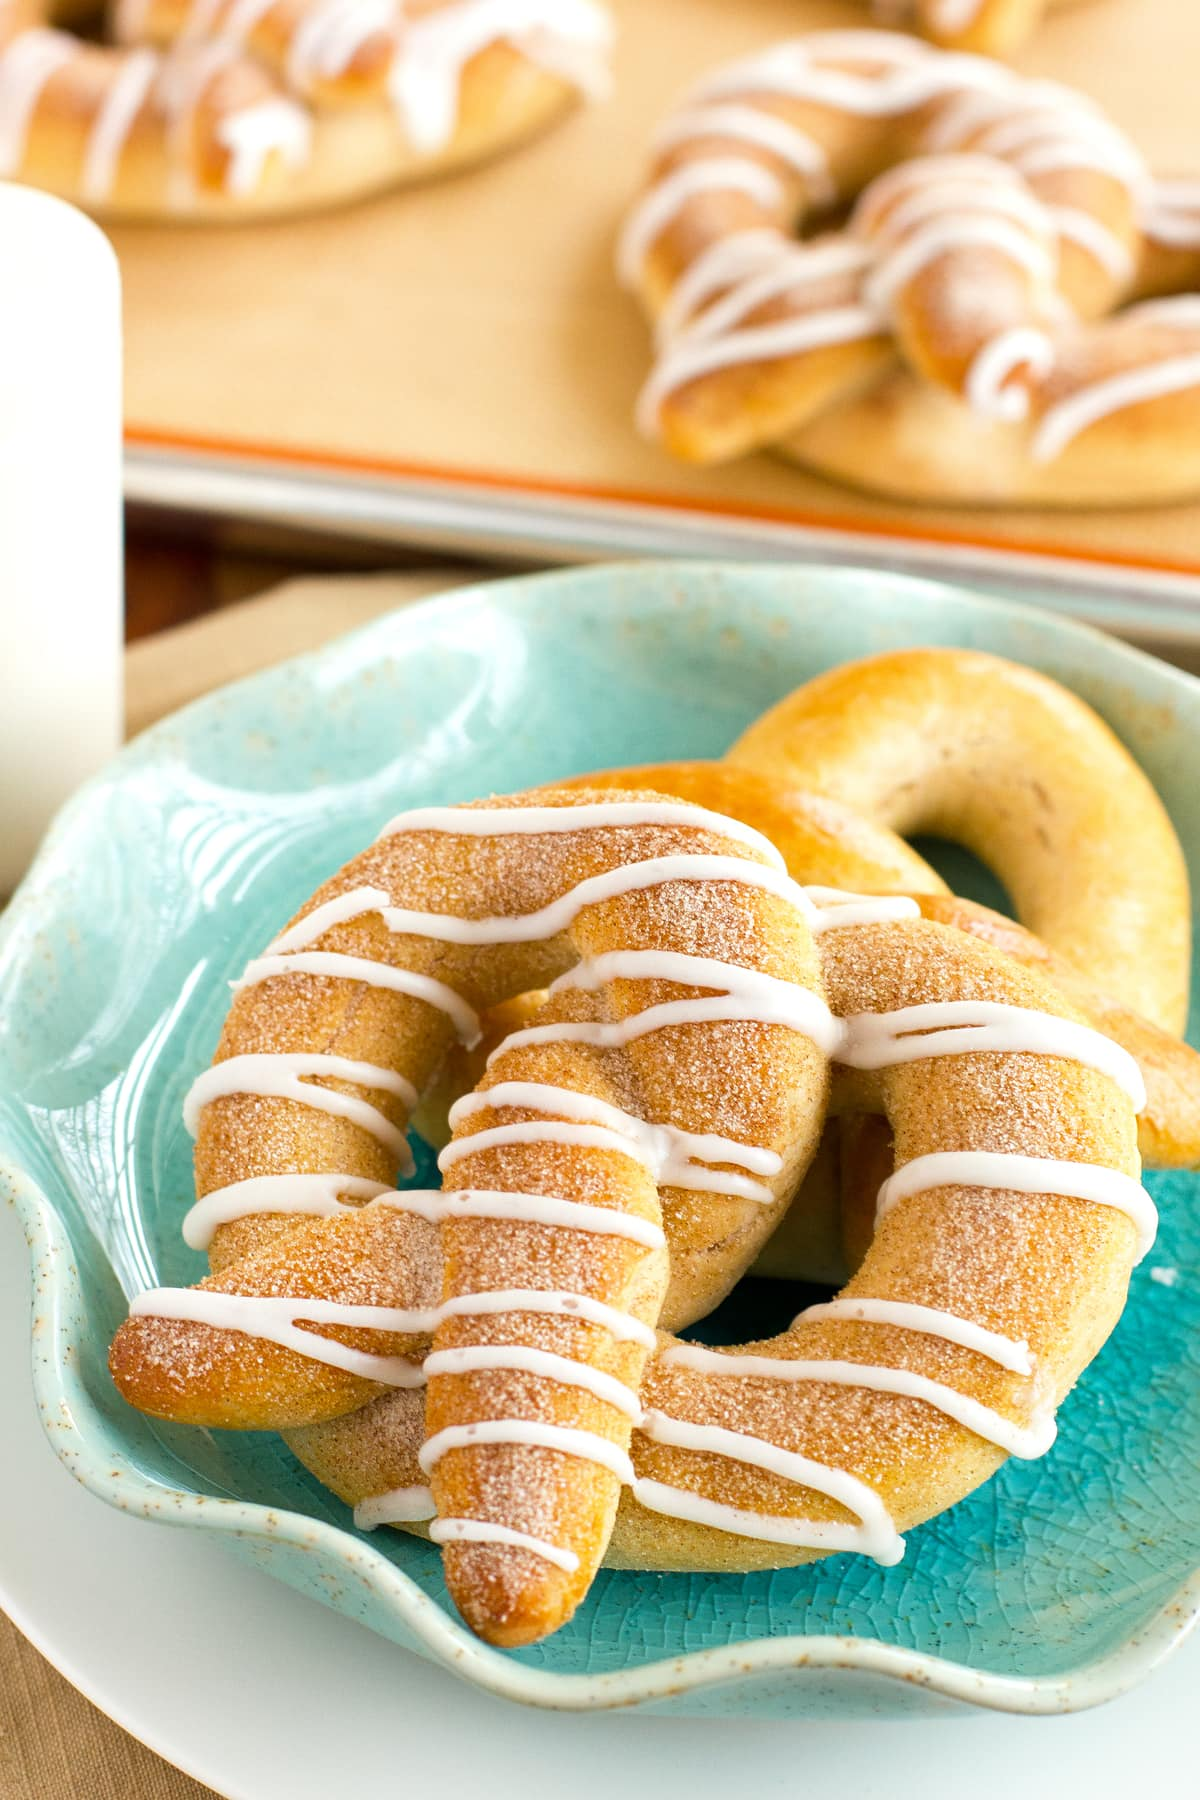 cinnamon pretzels with cinnamon sugar and vanilla glaze